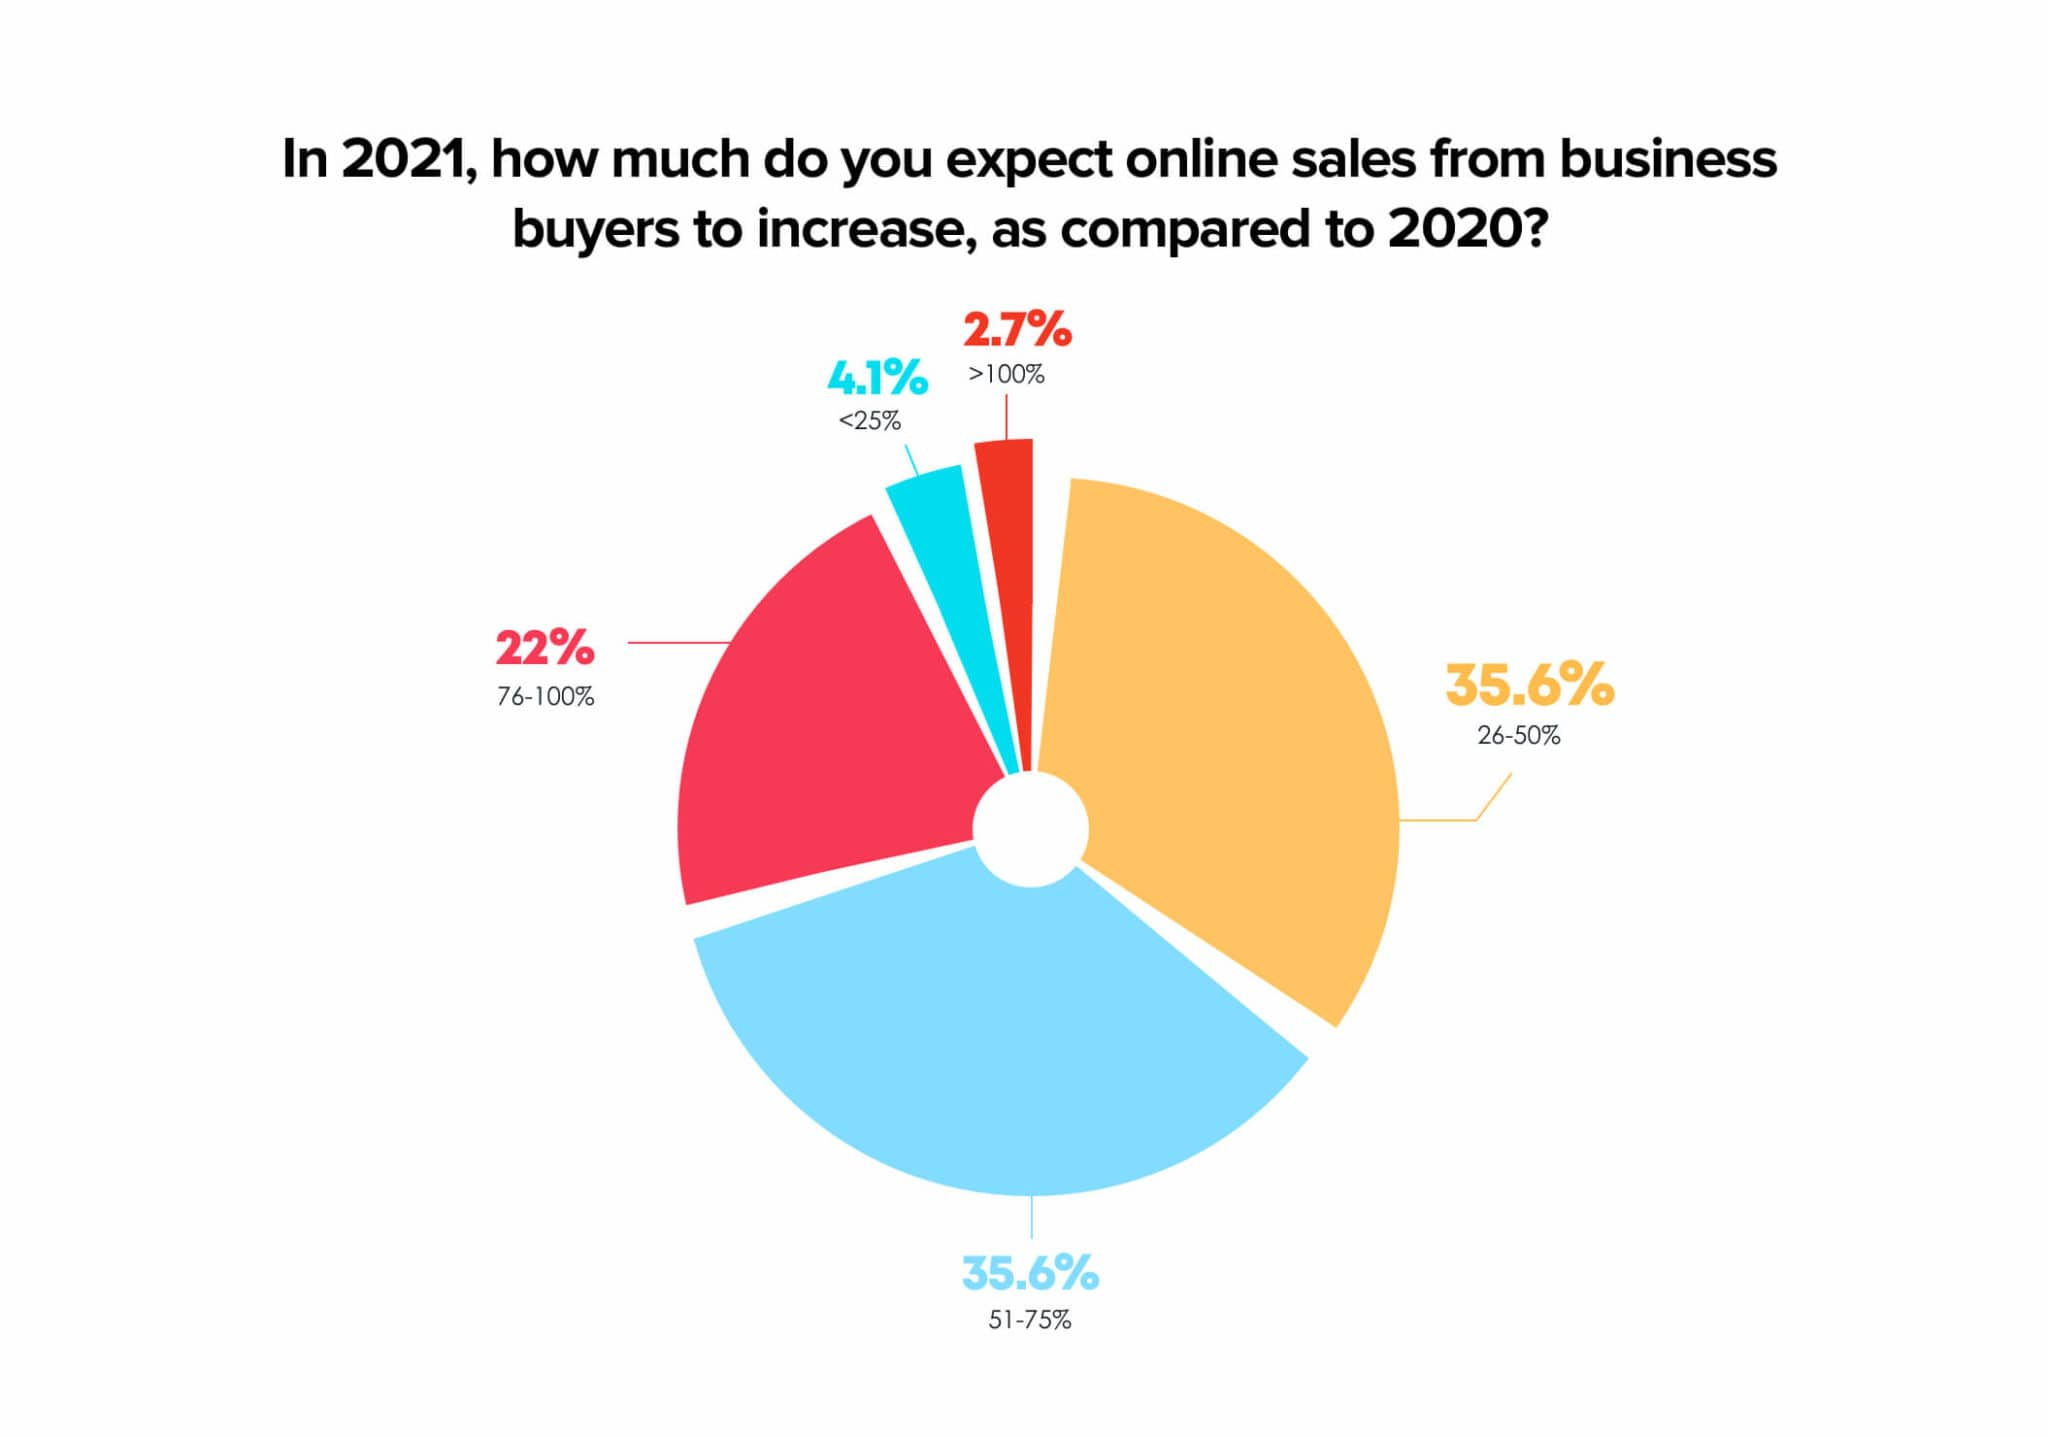 Increase in online purchase for business buyers